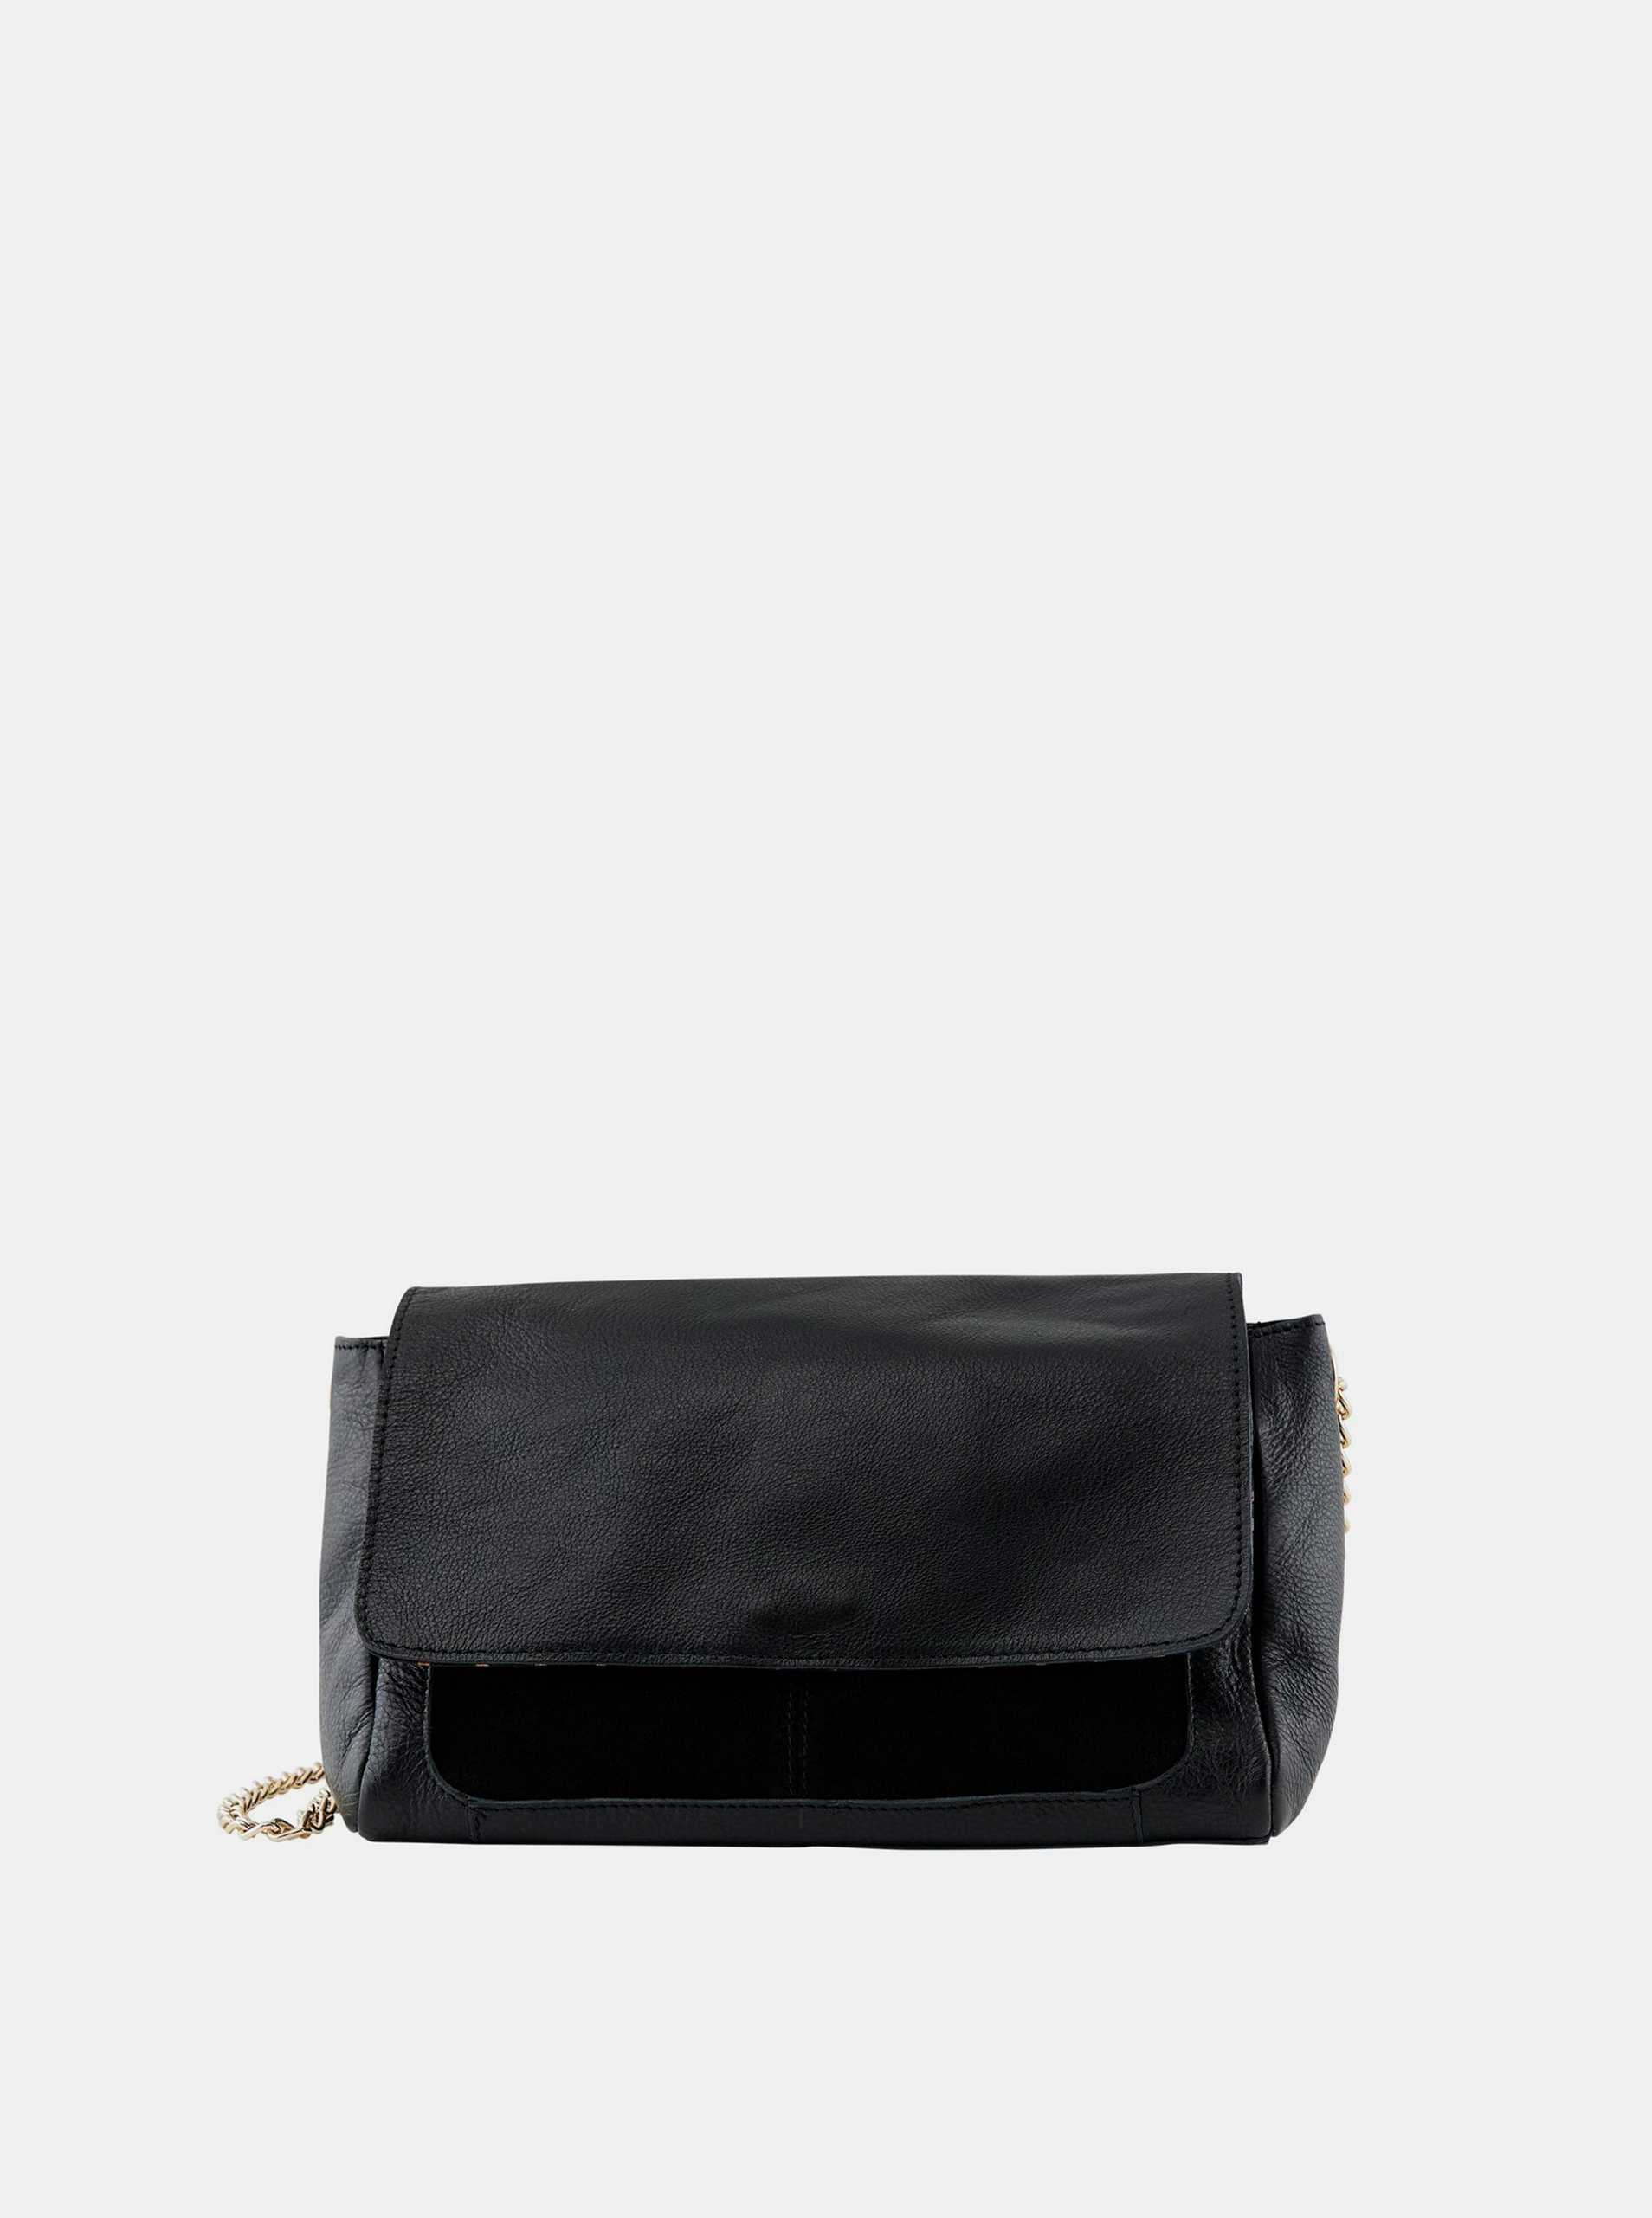 Pieces nero in pelle crossbody borsetta Gunna